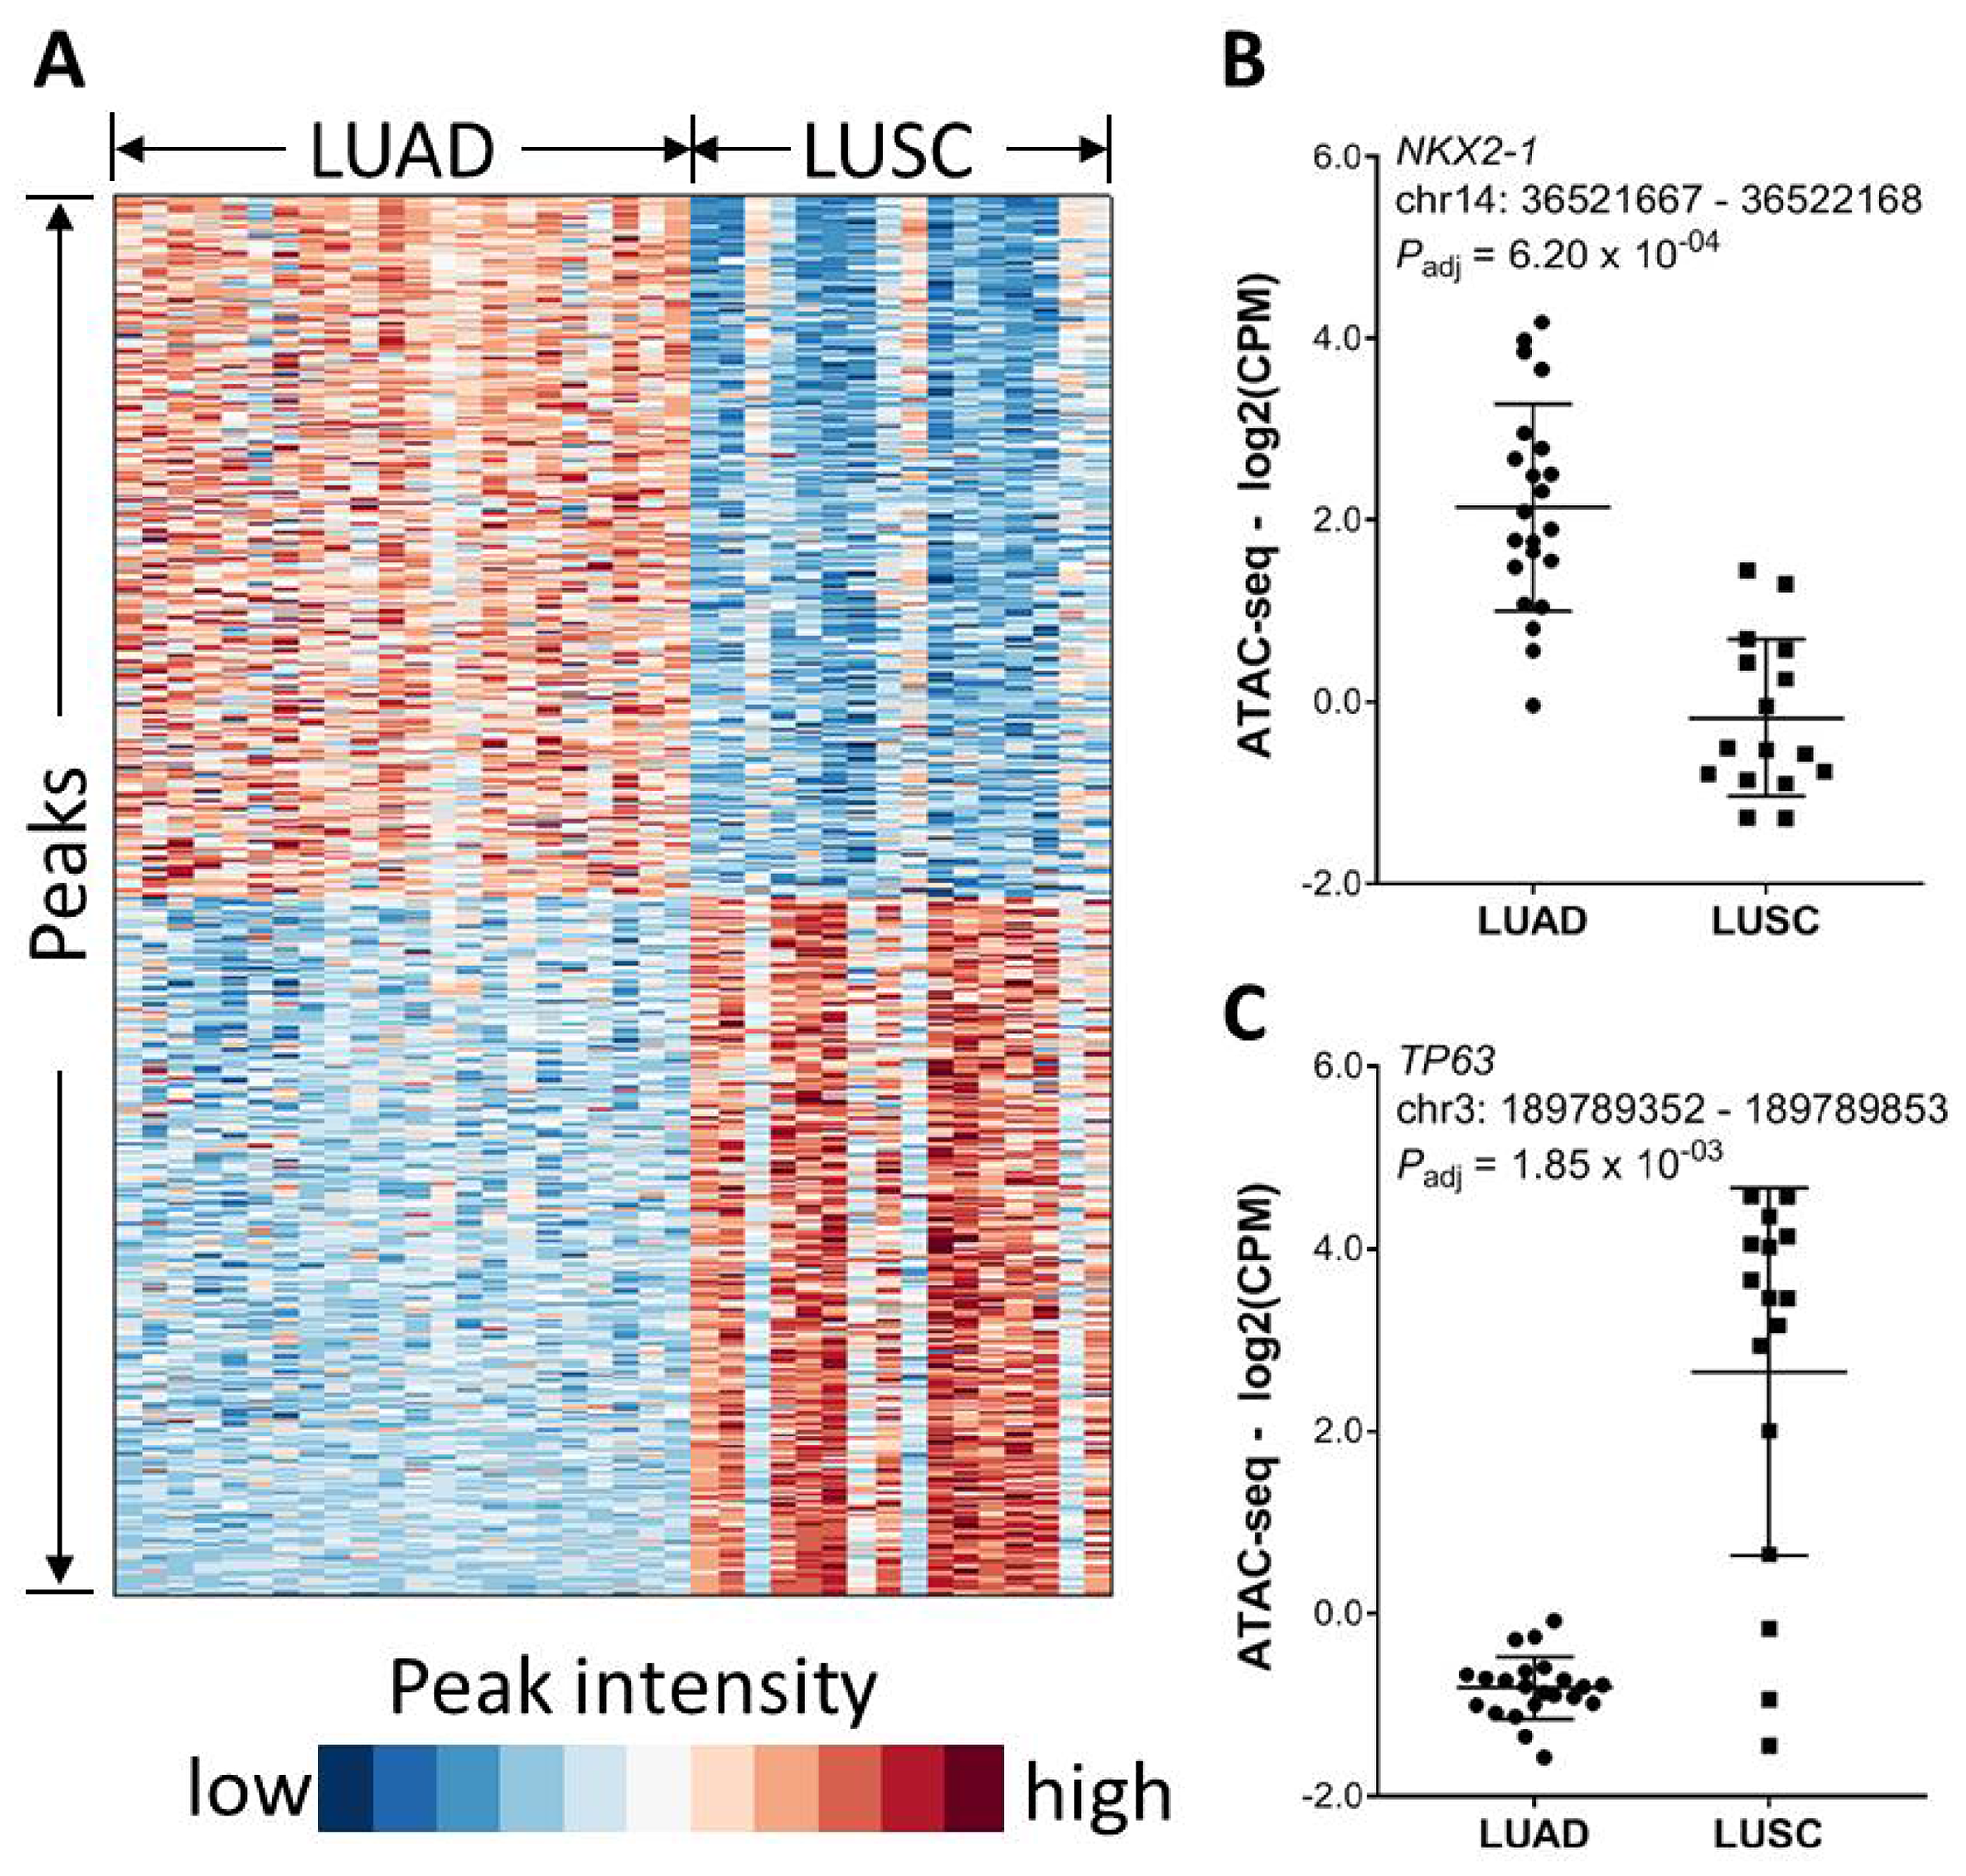 Association of chromatin accessibility with tumor histology.